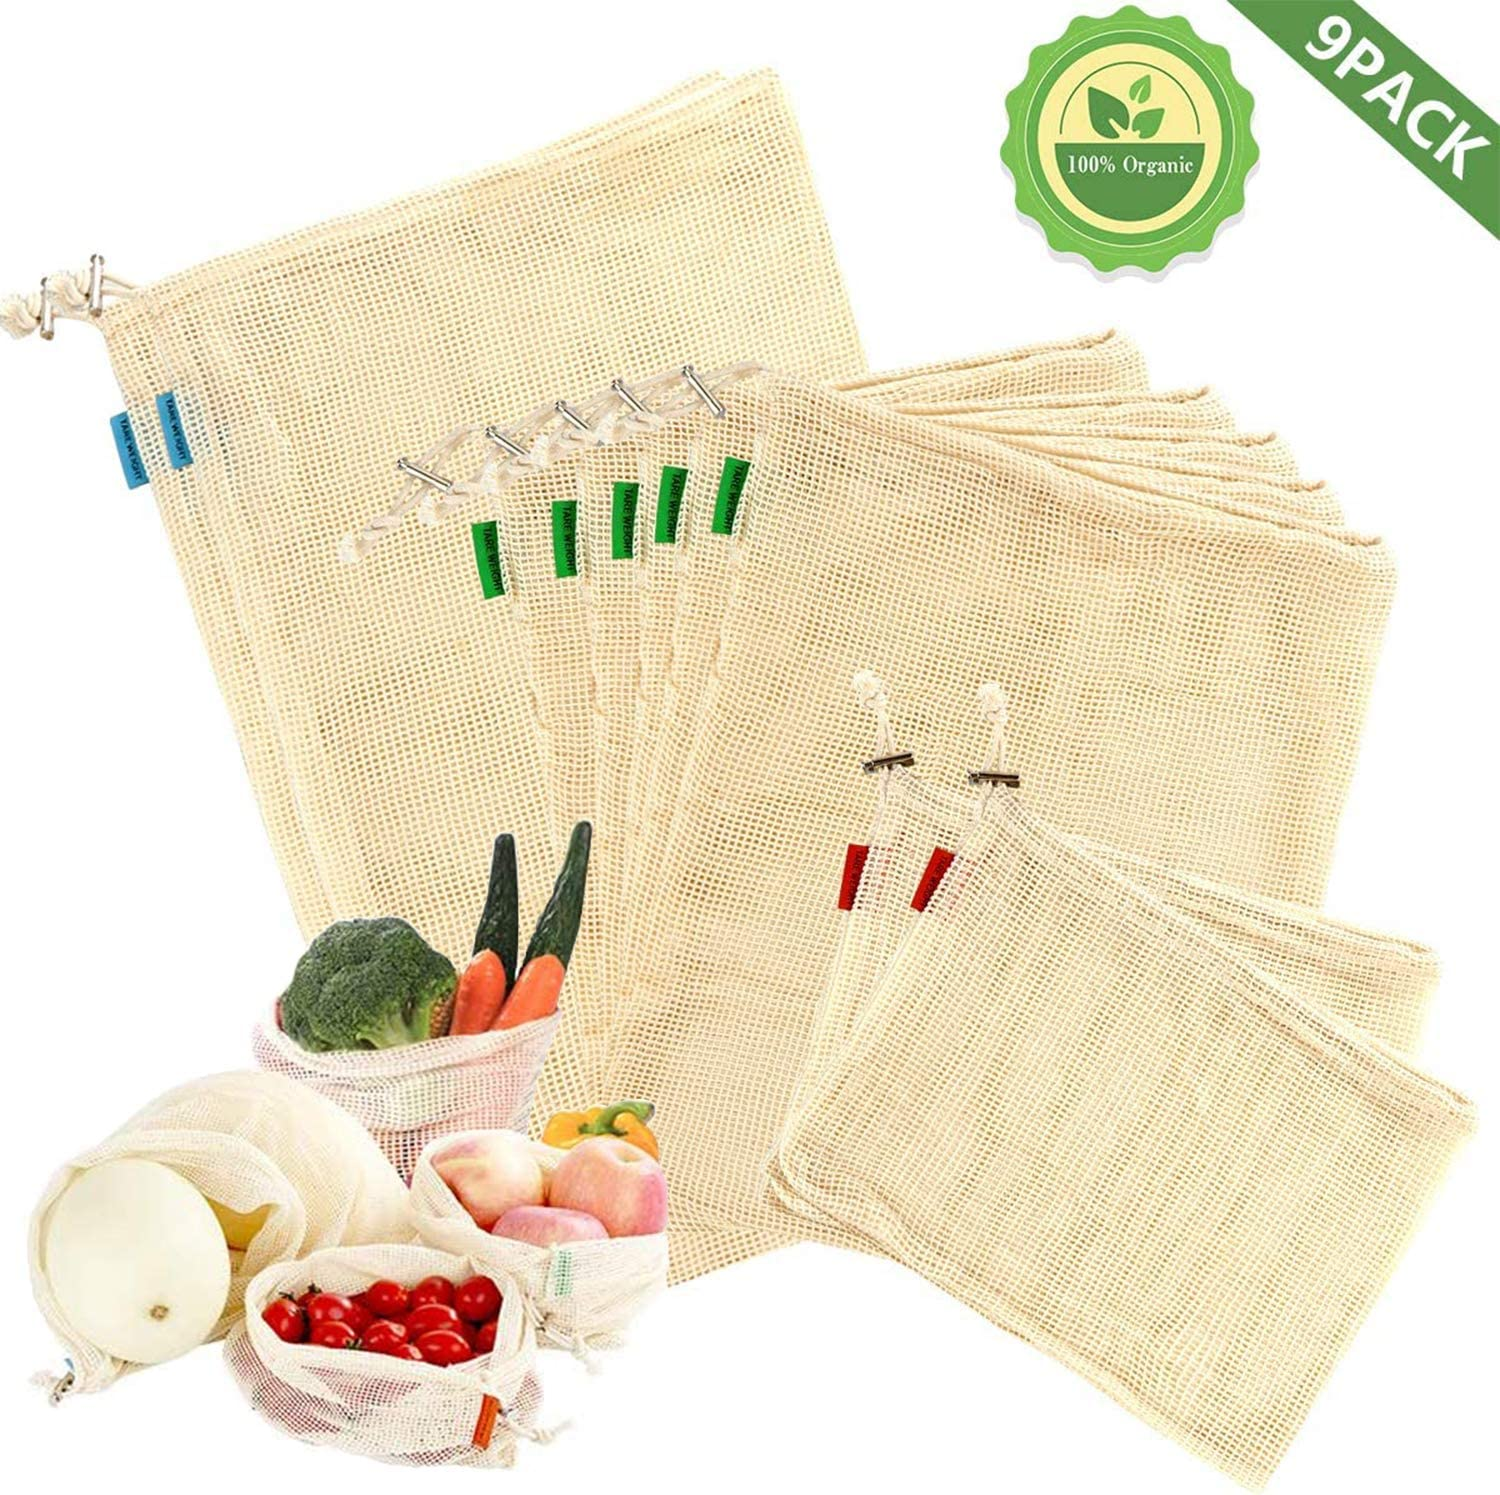 Evanno Zero Waste Produce bags,Natural Cotton Durable and Environment-Friendly Reusable Produce Bags for Vegetables,Fruit,Kid Toy Storage(Set of 2 Small,5 Medium,2 Large)